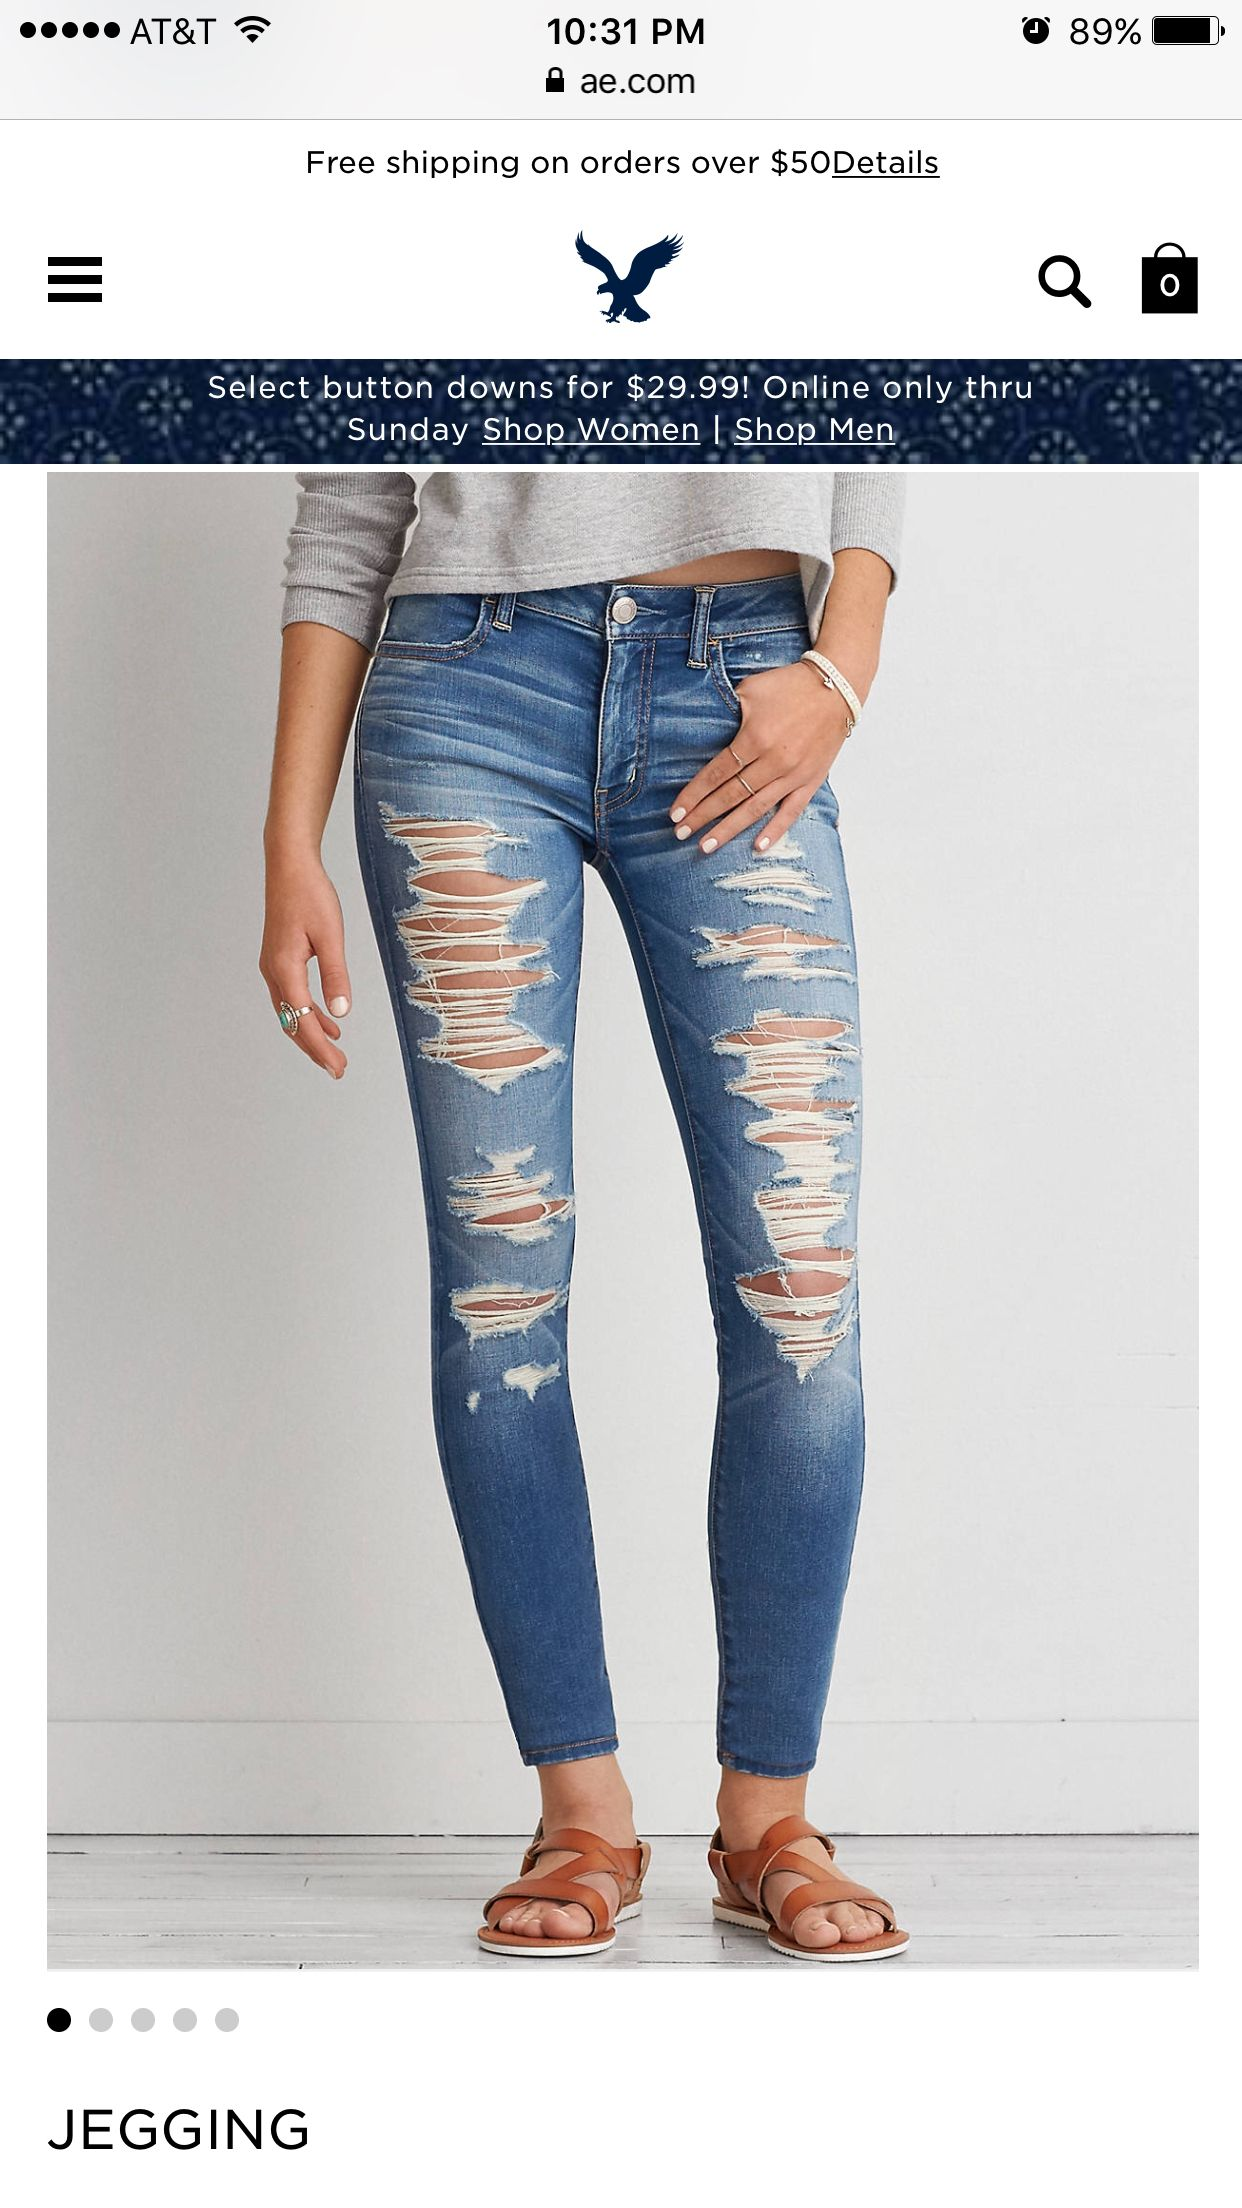 57426f7320d2 Best Jeans for Women of All Sizes and Styles 2018 200+ Cute Ripped Jeans  Outfits For Winter 2018 #femalefashion #winteroutfits #sweaters #jeans # rippedjeans ...